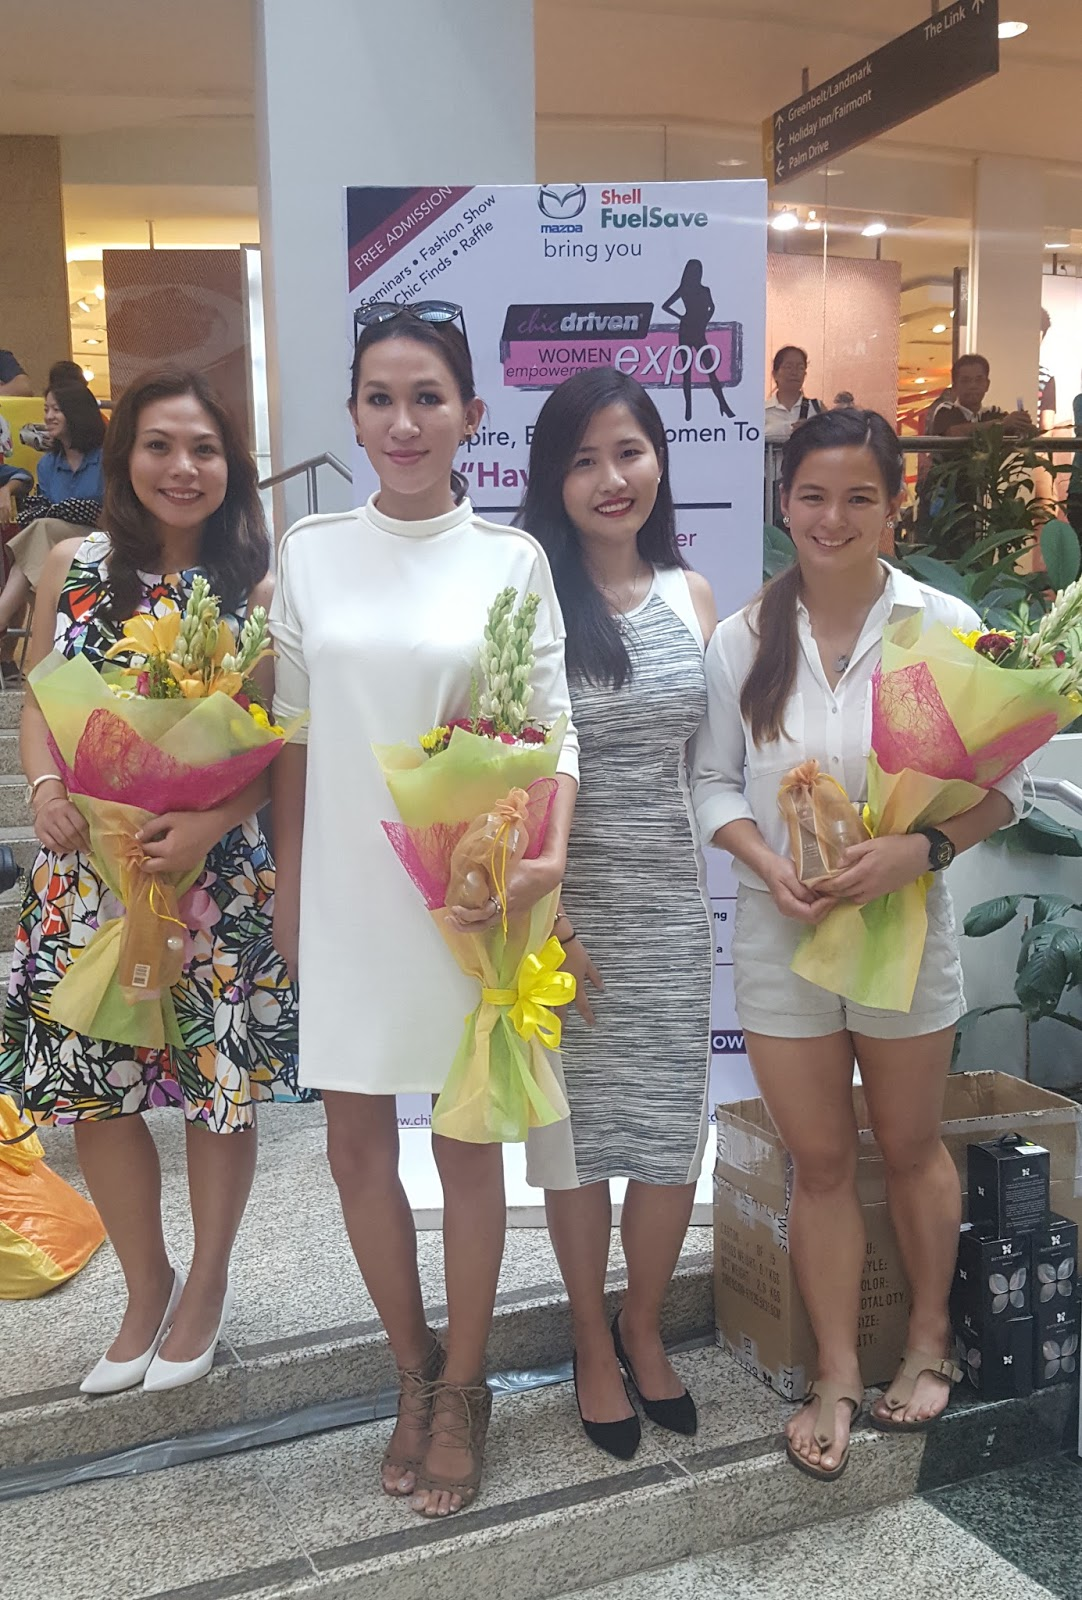 Lemon GreenTea: Priva partners with the ChicDriven Women